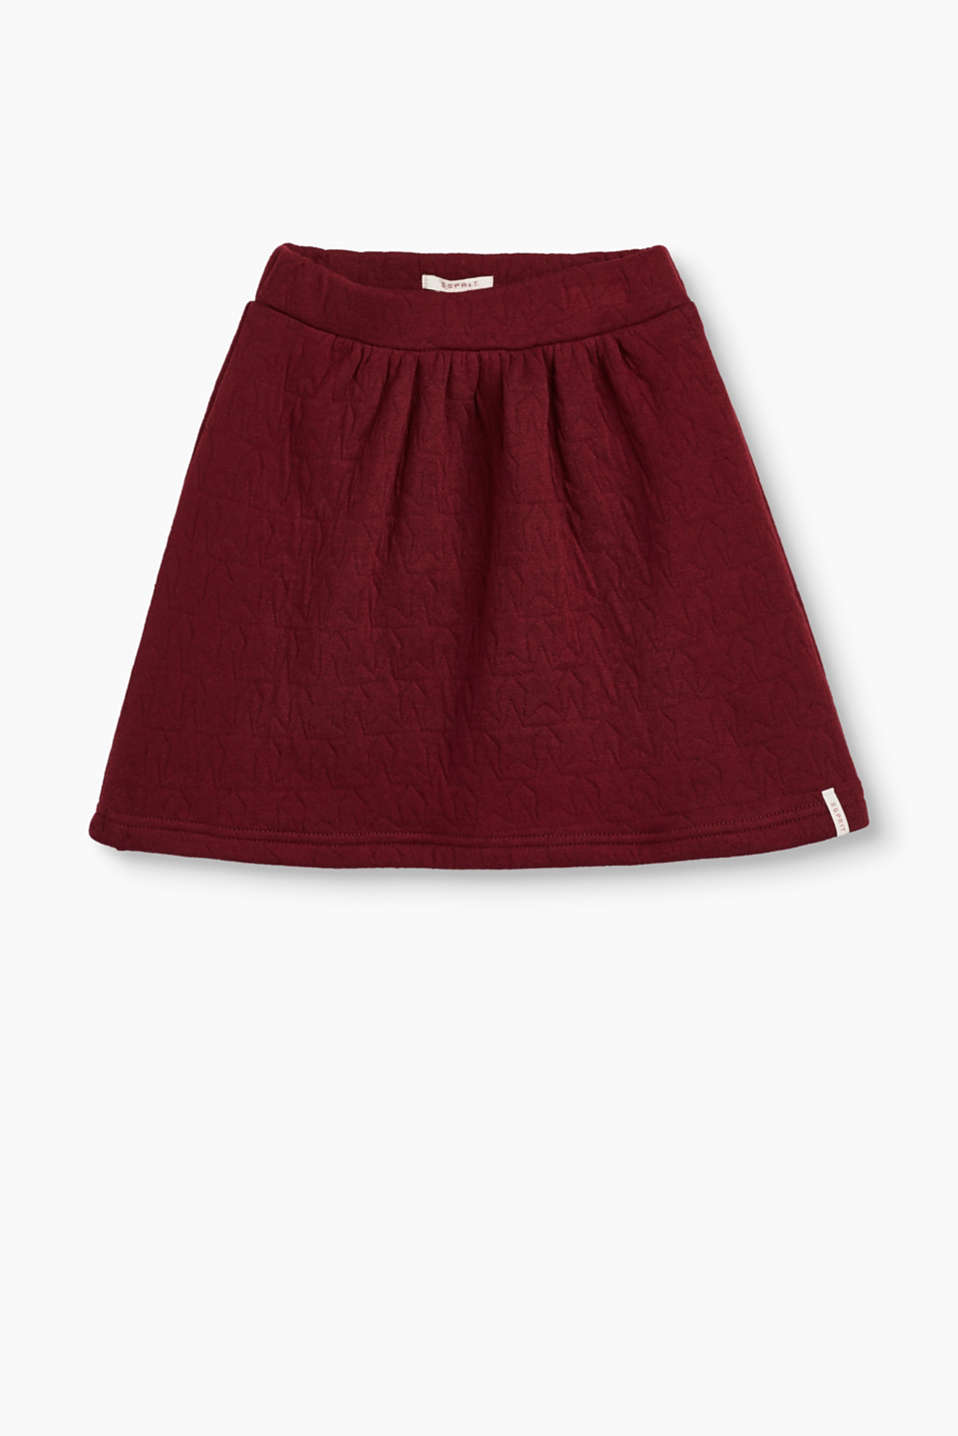 Ultra soft, comfortable and trendy: this sweatshirt skirt with a star pattern is the perfect companion for every day.